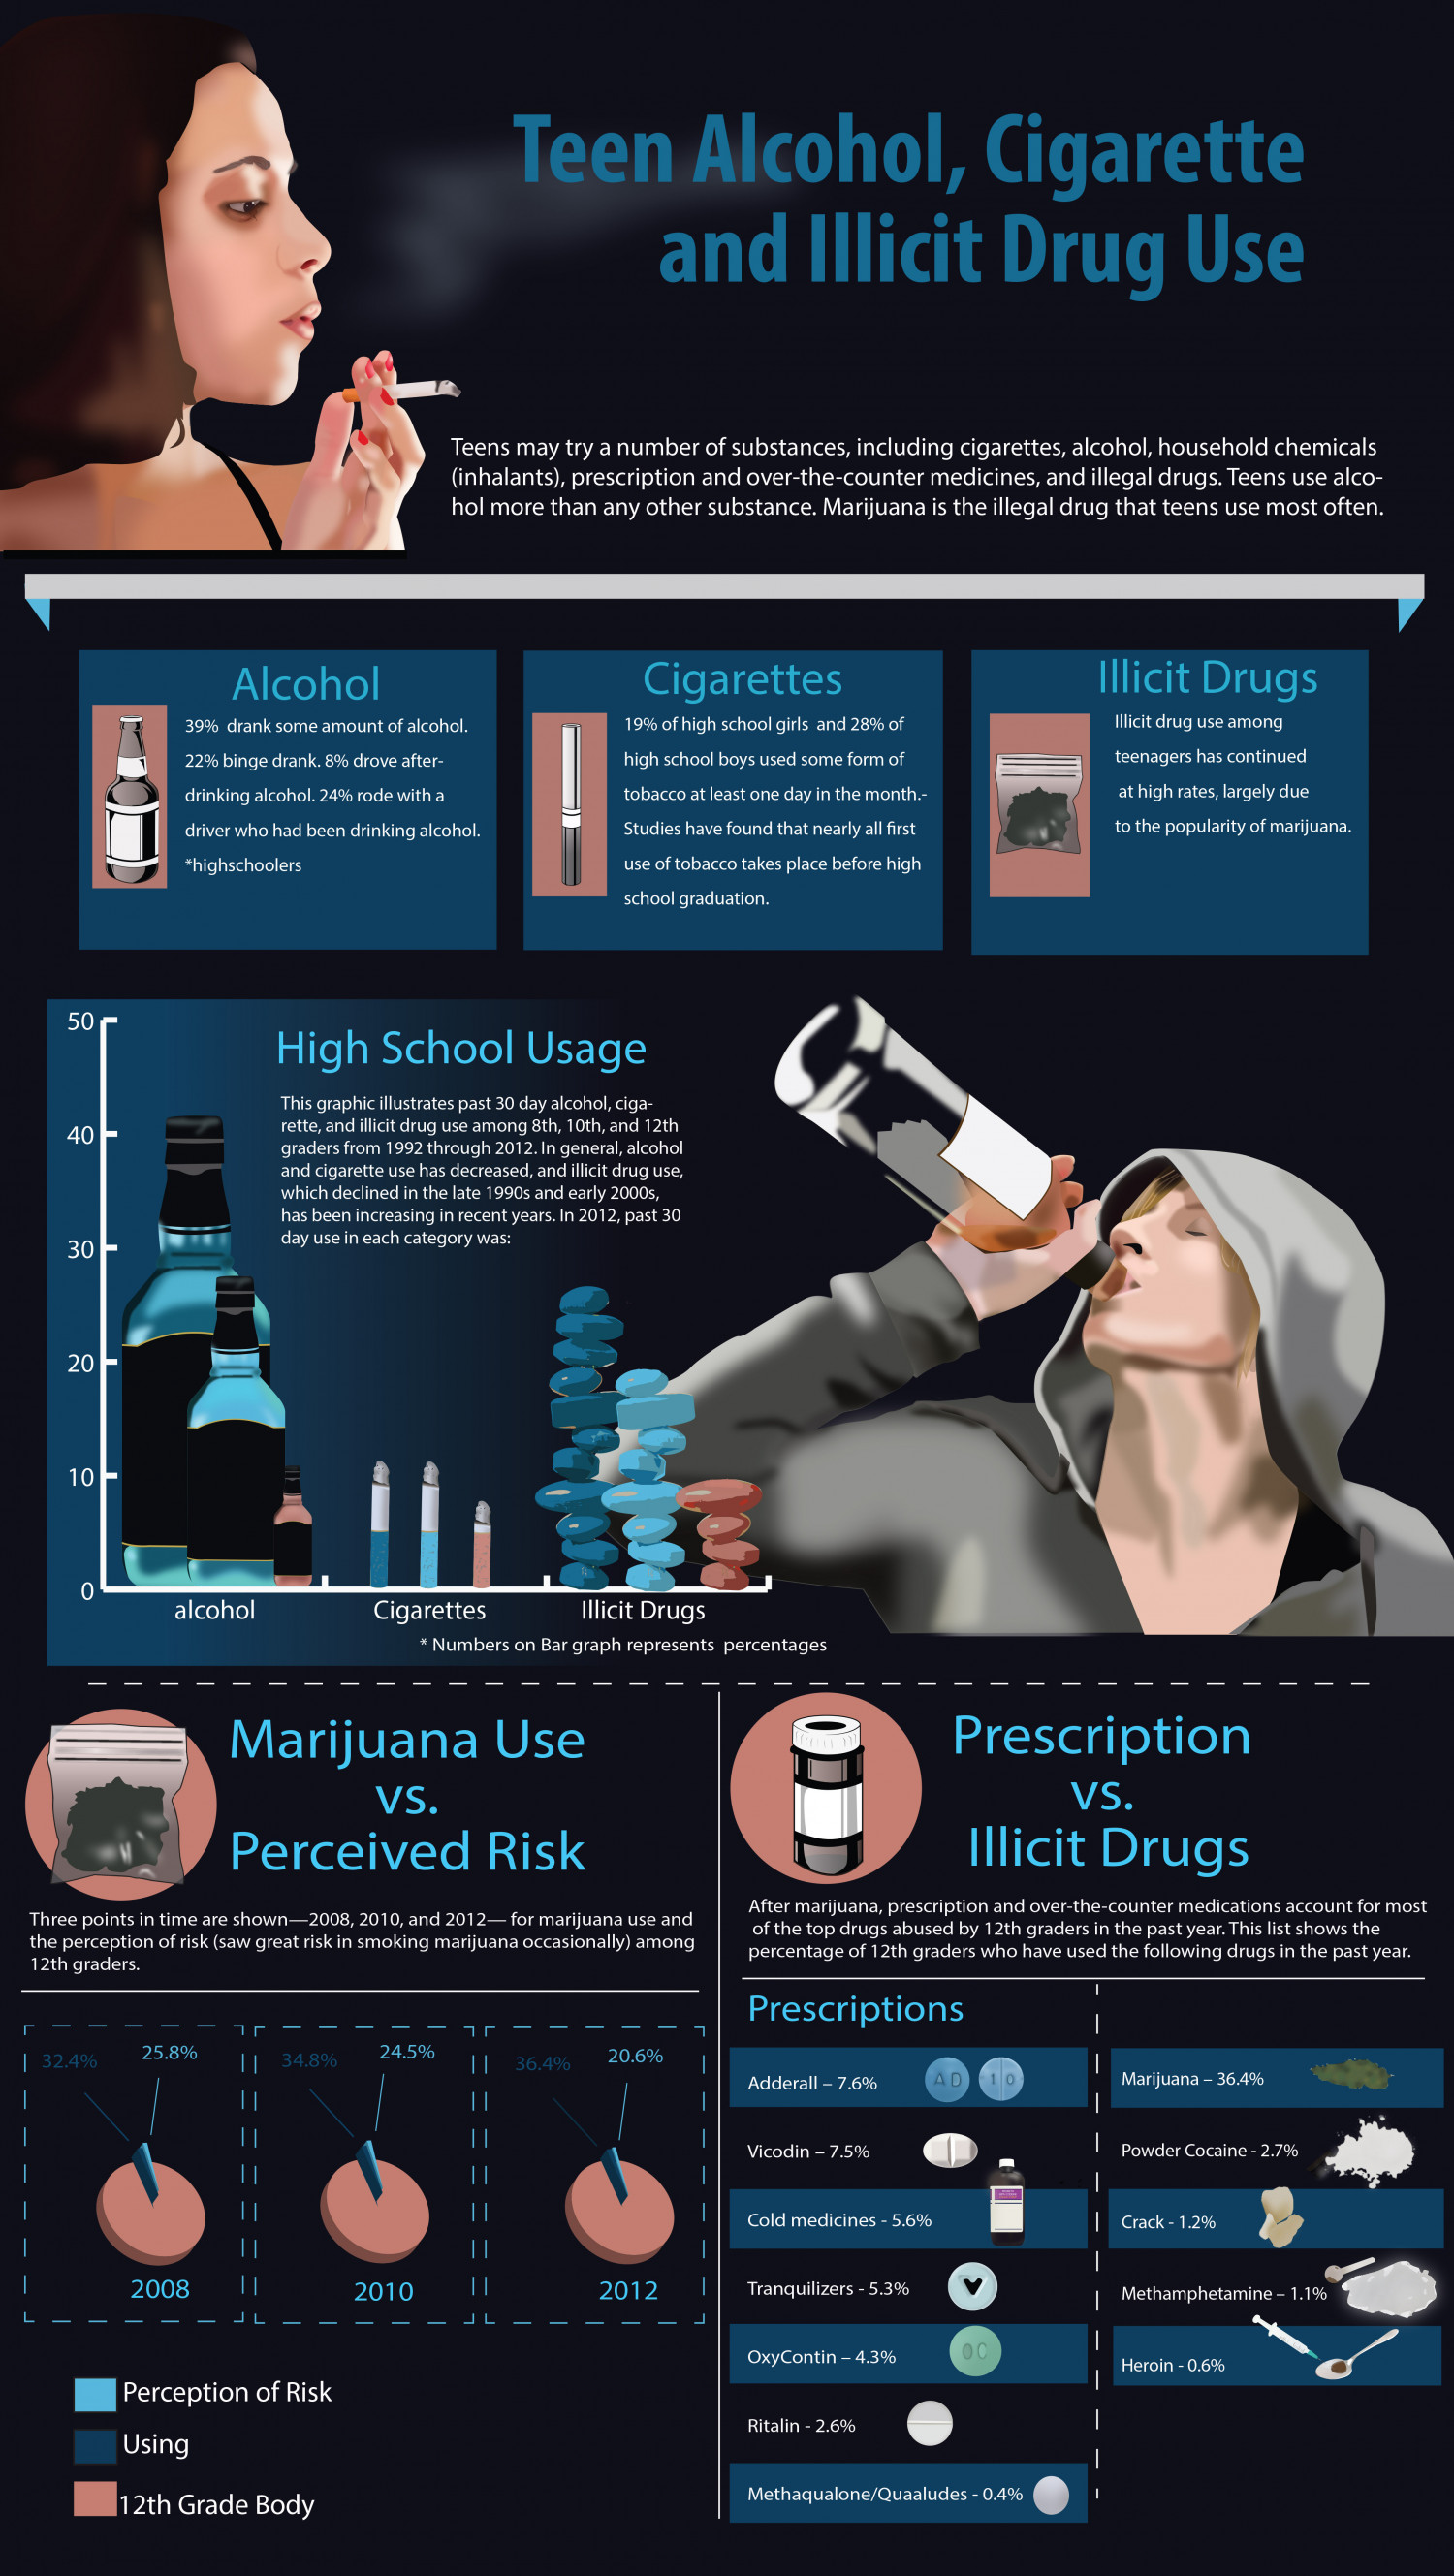 Teen Alcohol, Cigarette and Illicit Drug Use Infographic